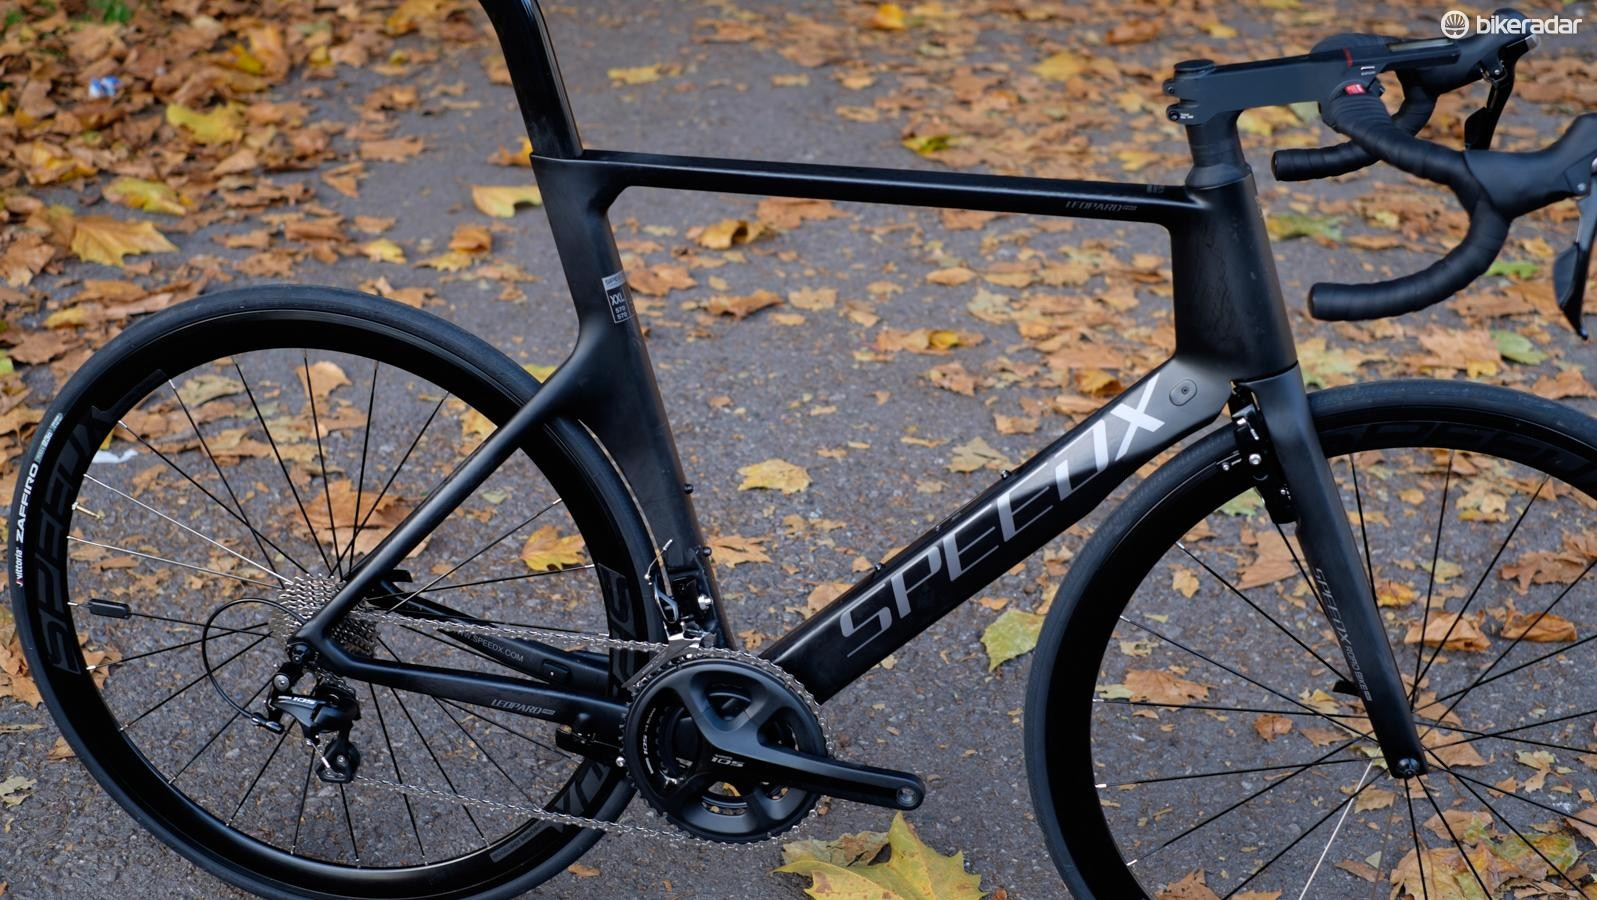 The frame, although weighty, has an impressve level of stiffness for an aero bike